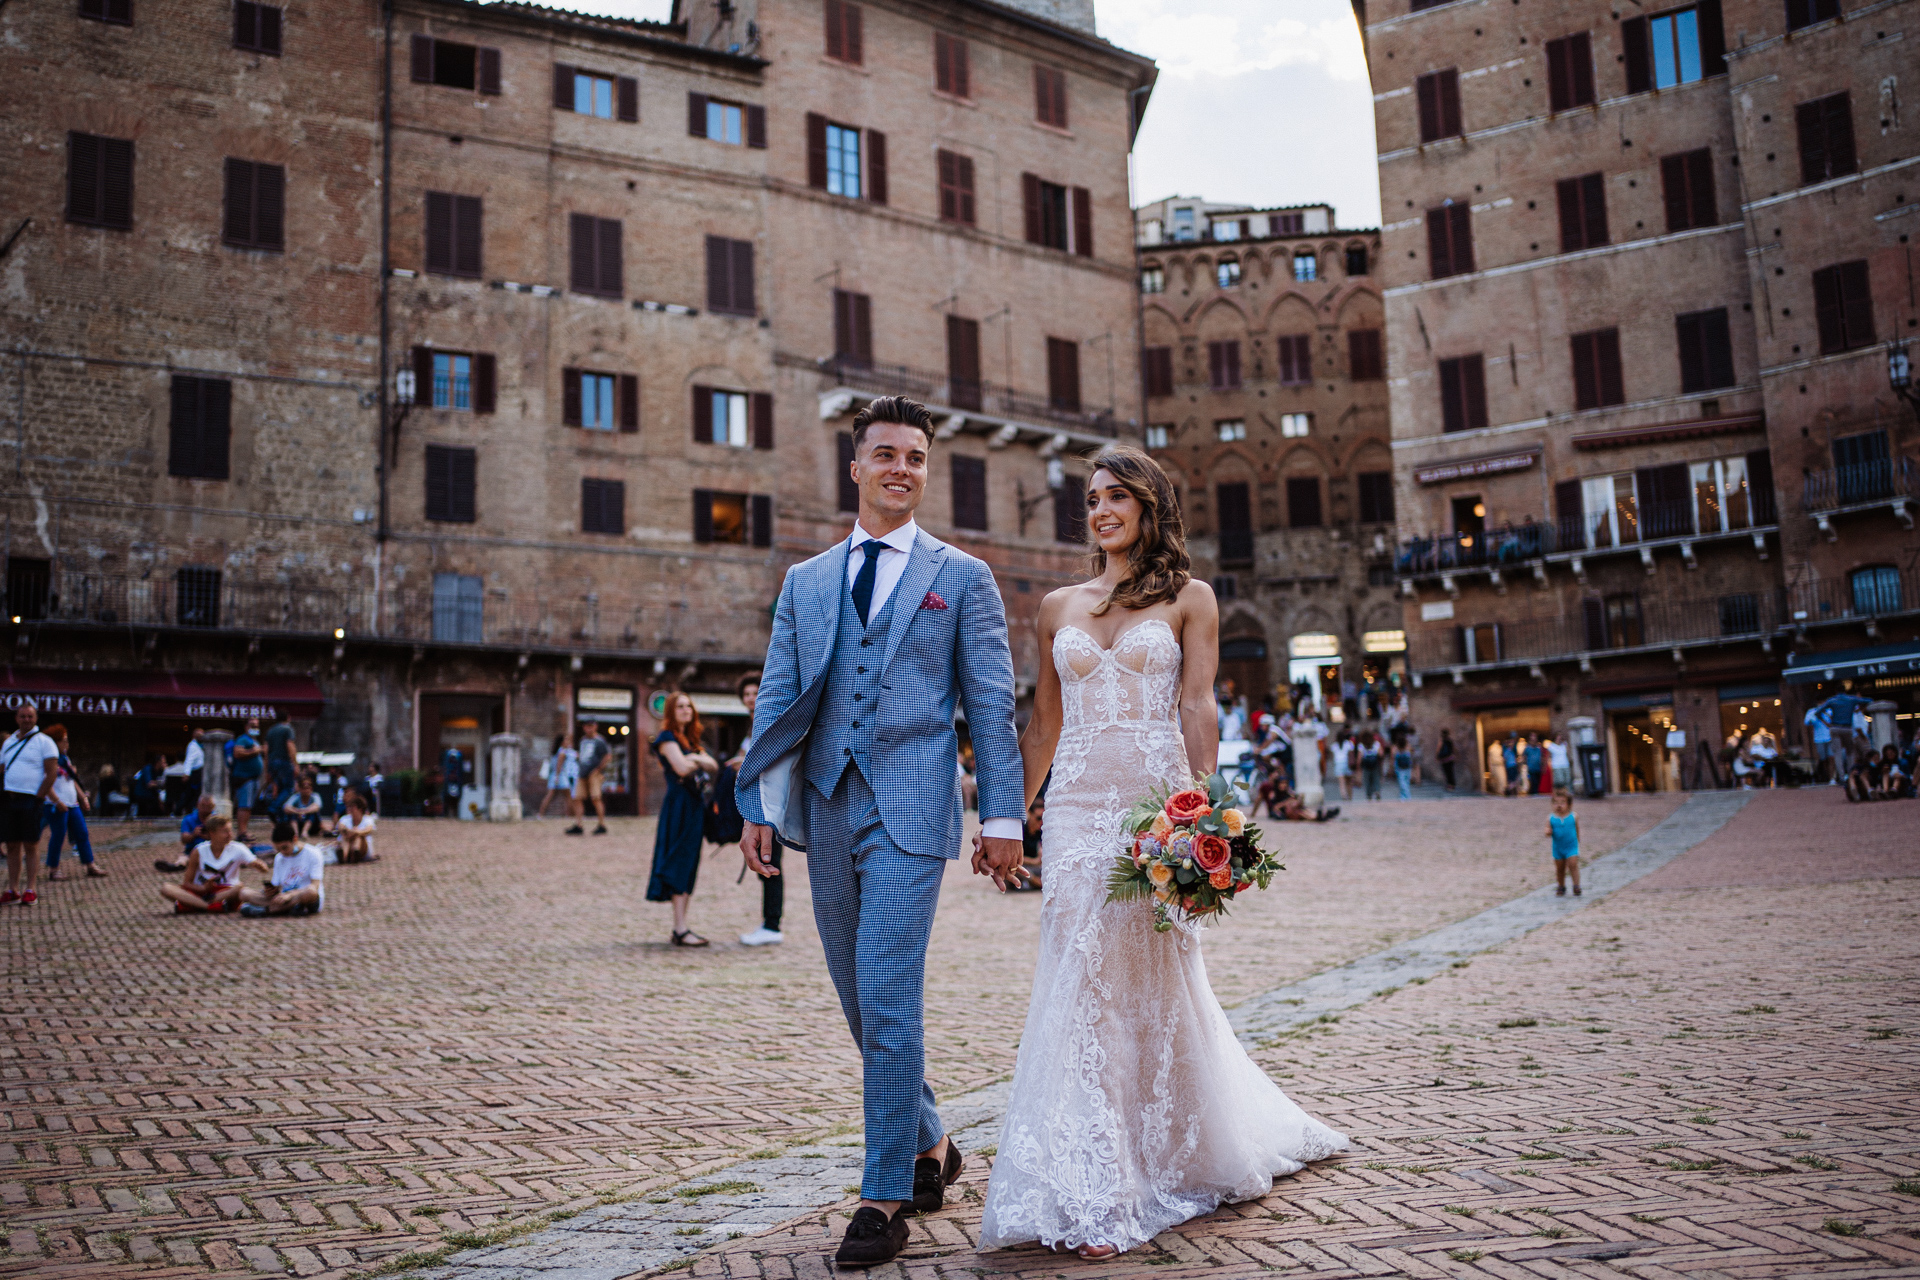 Piazza del Campo, Siena, Tuscany Elopement Portrait Session | After the ceremony, the couple heads from the countryside to the historic center of Siena